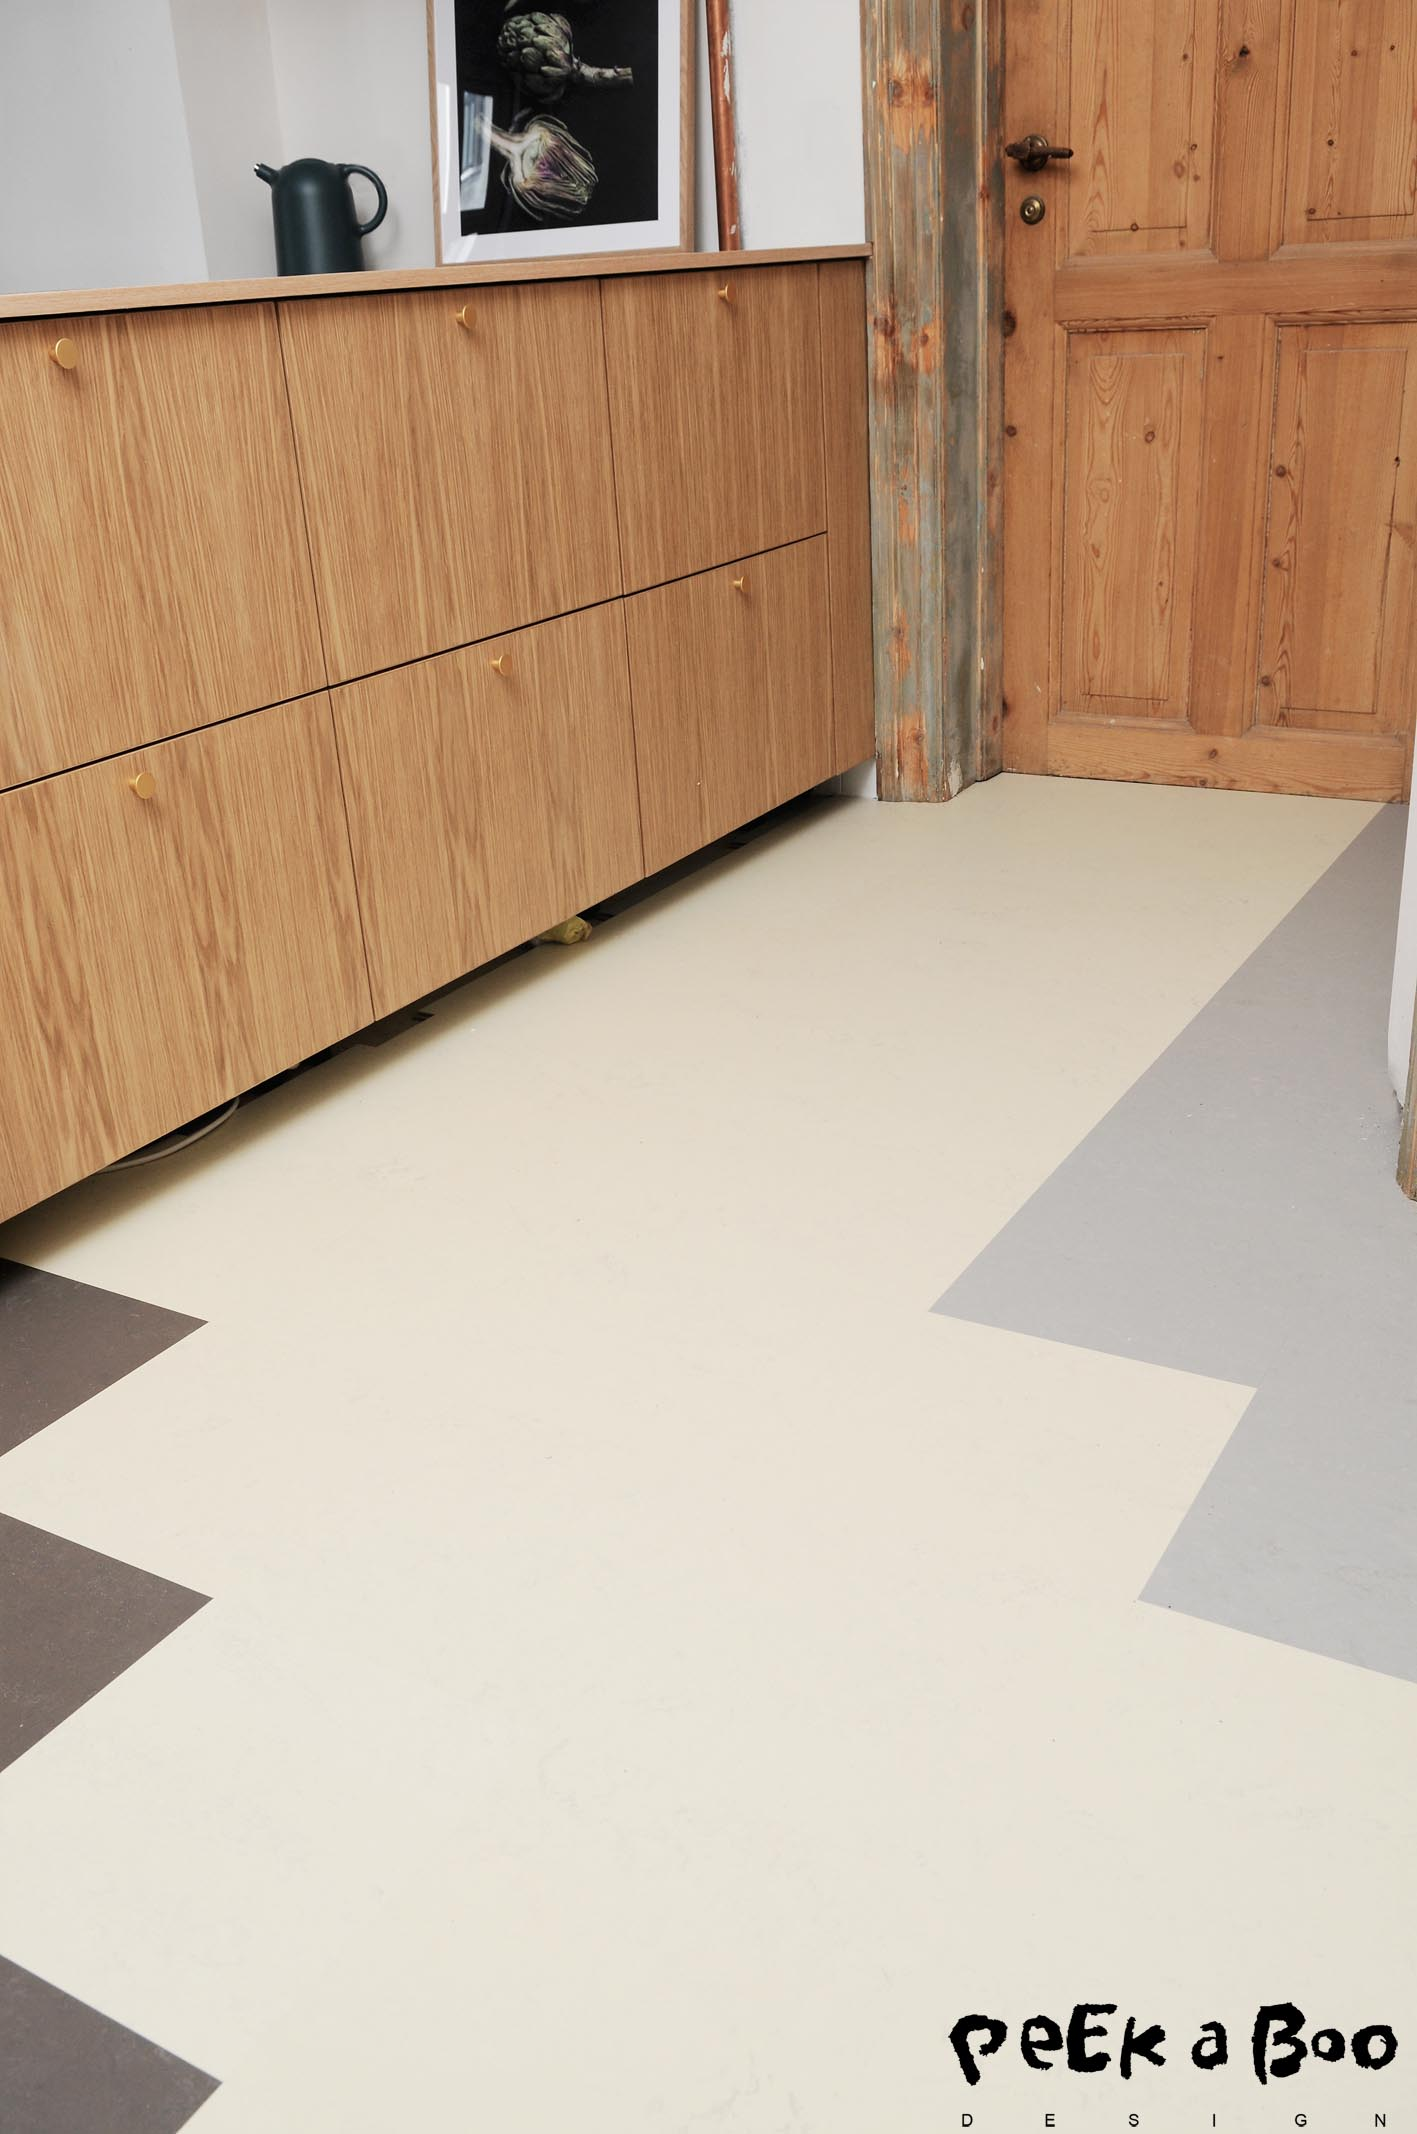 The Forbo flooring system marmoleum looks fantastic with the oak frames.